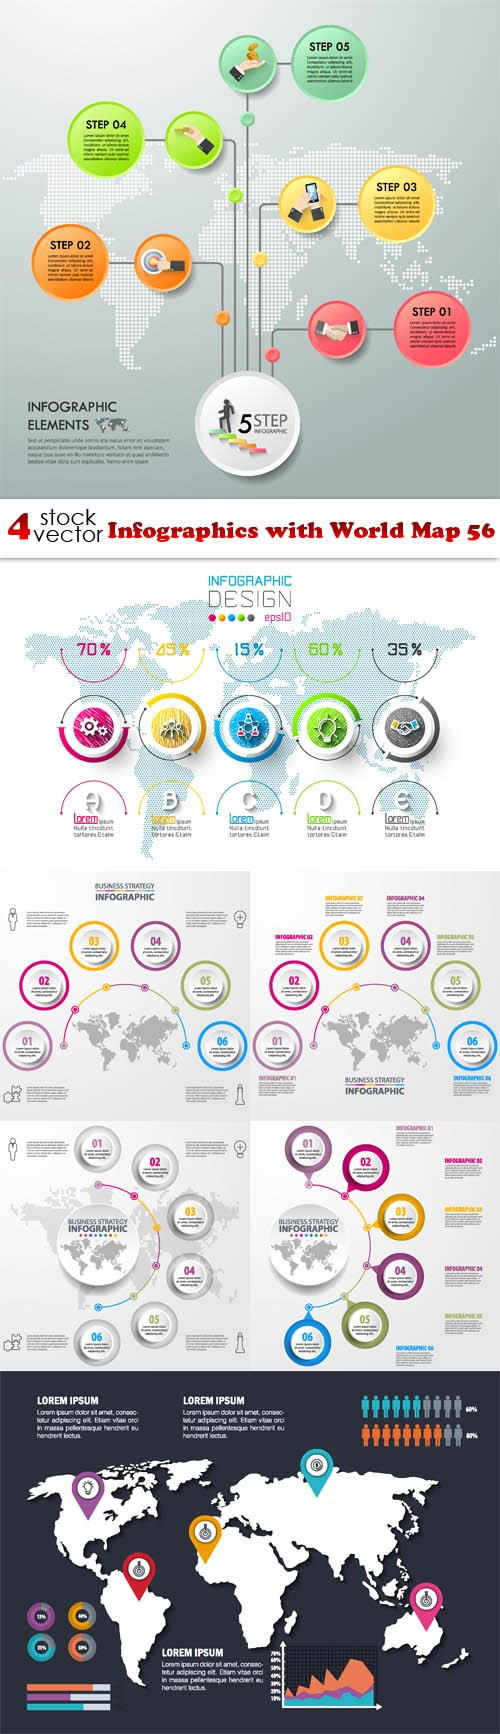 Vectors - Infographics with World Map 56